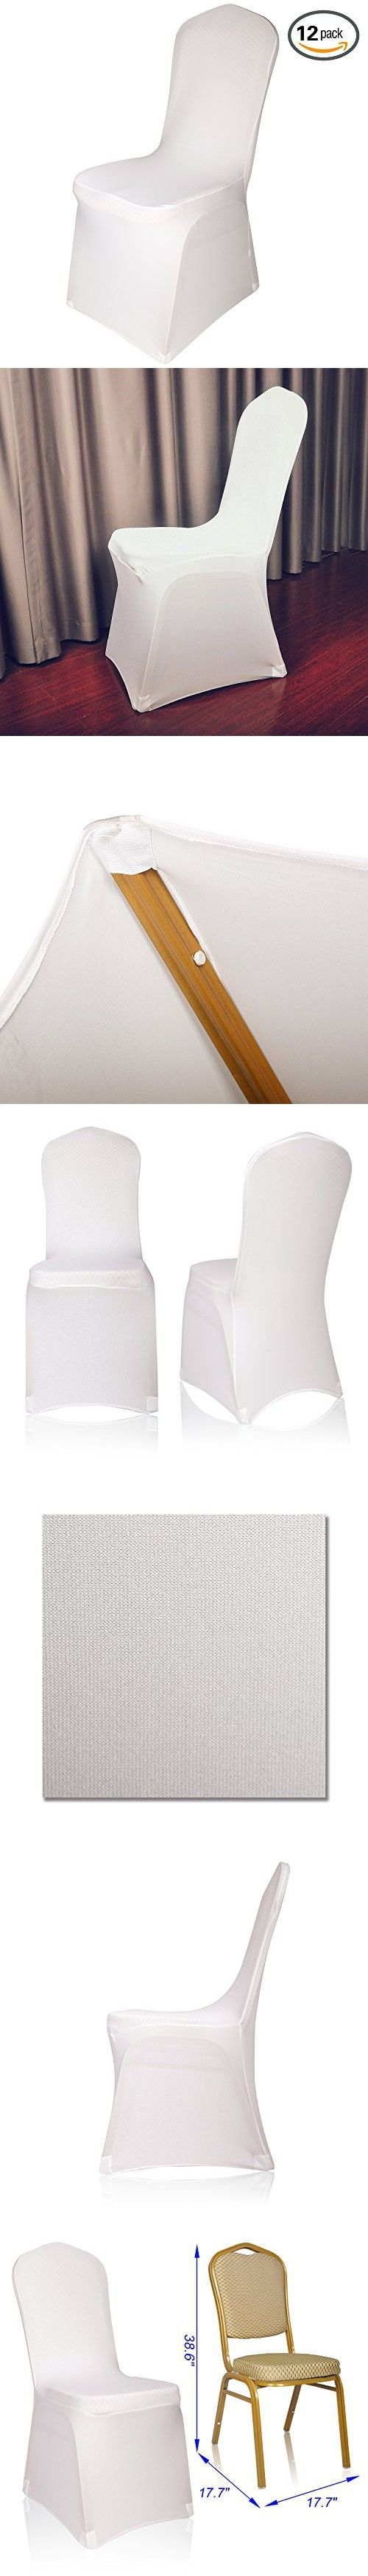 Emart Set of 12pcs Ivory Color Polyester Spandex Banquet Wedding Party Chair Covers